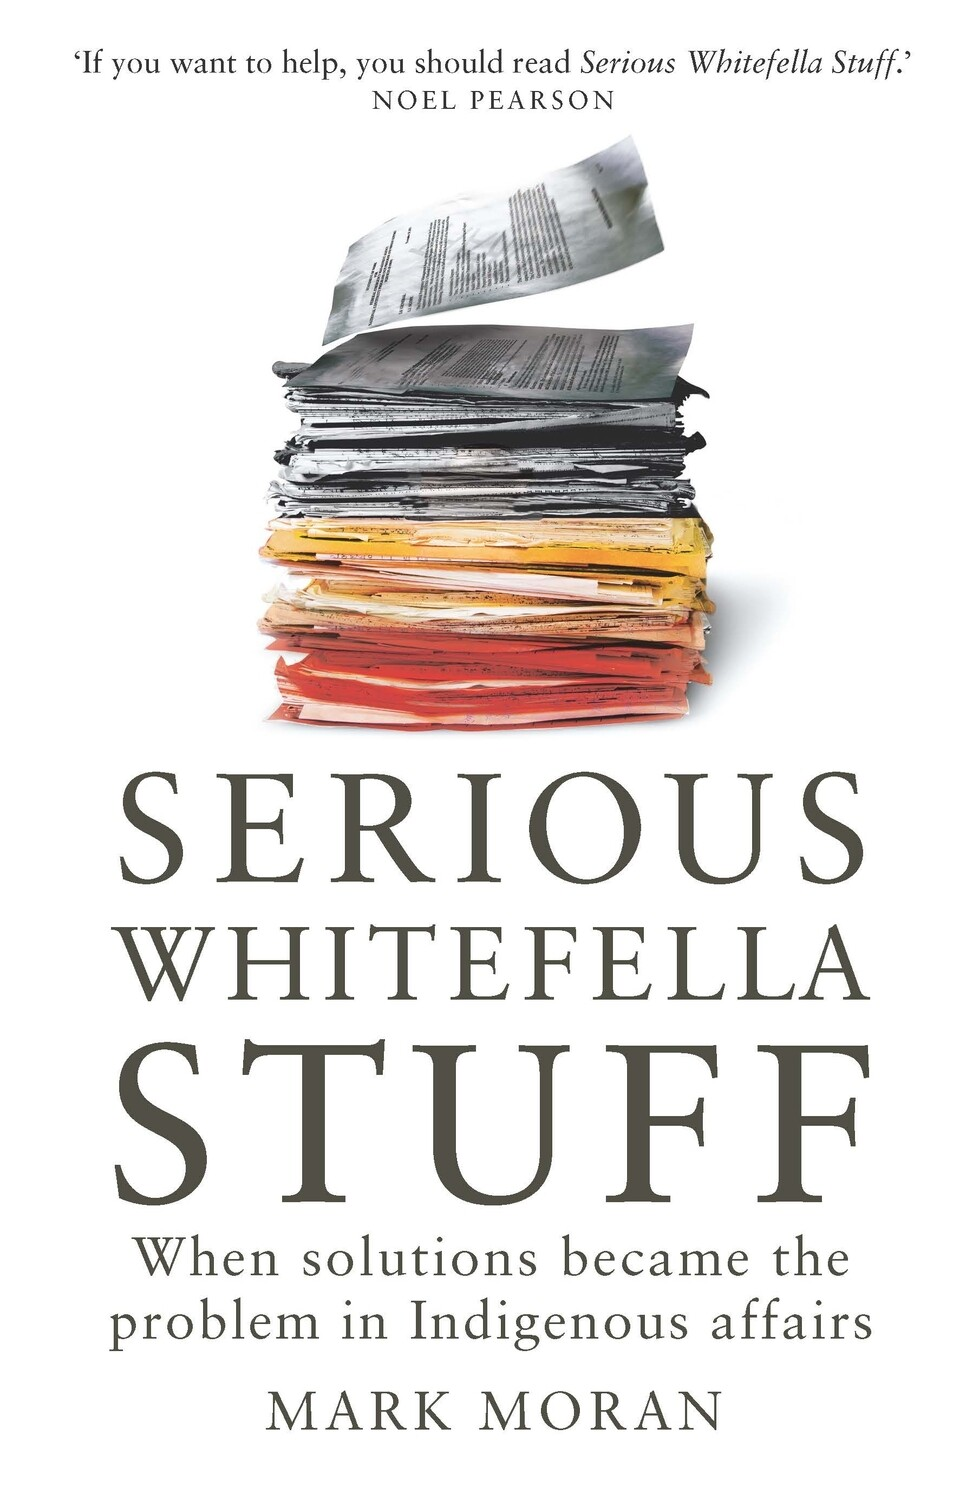 Serious Whitefella Stuff: When solutions became the problem in Indigenous affairs by Mark Moran